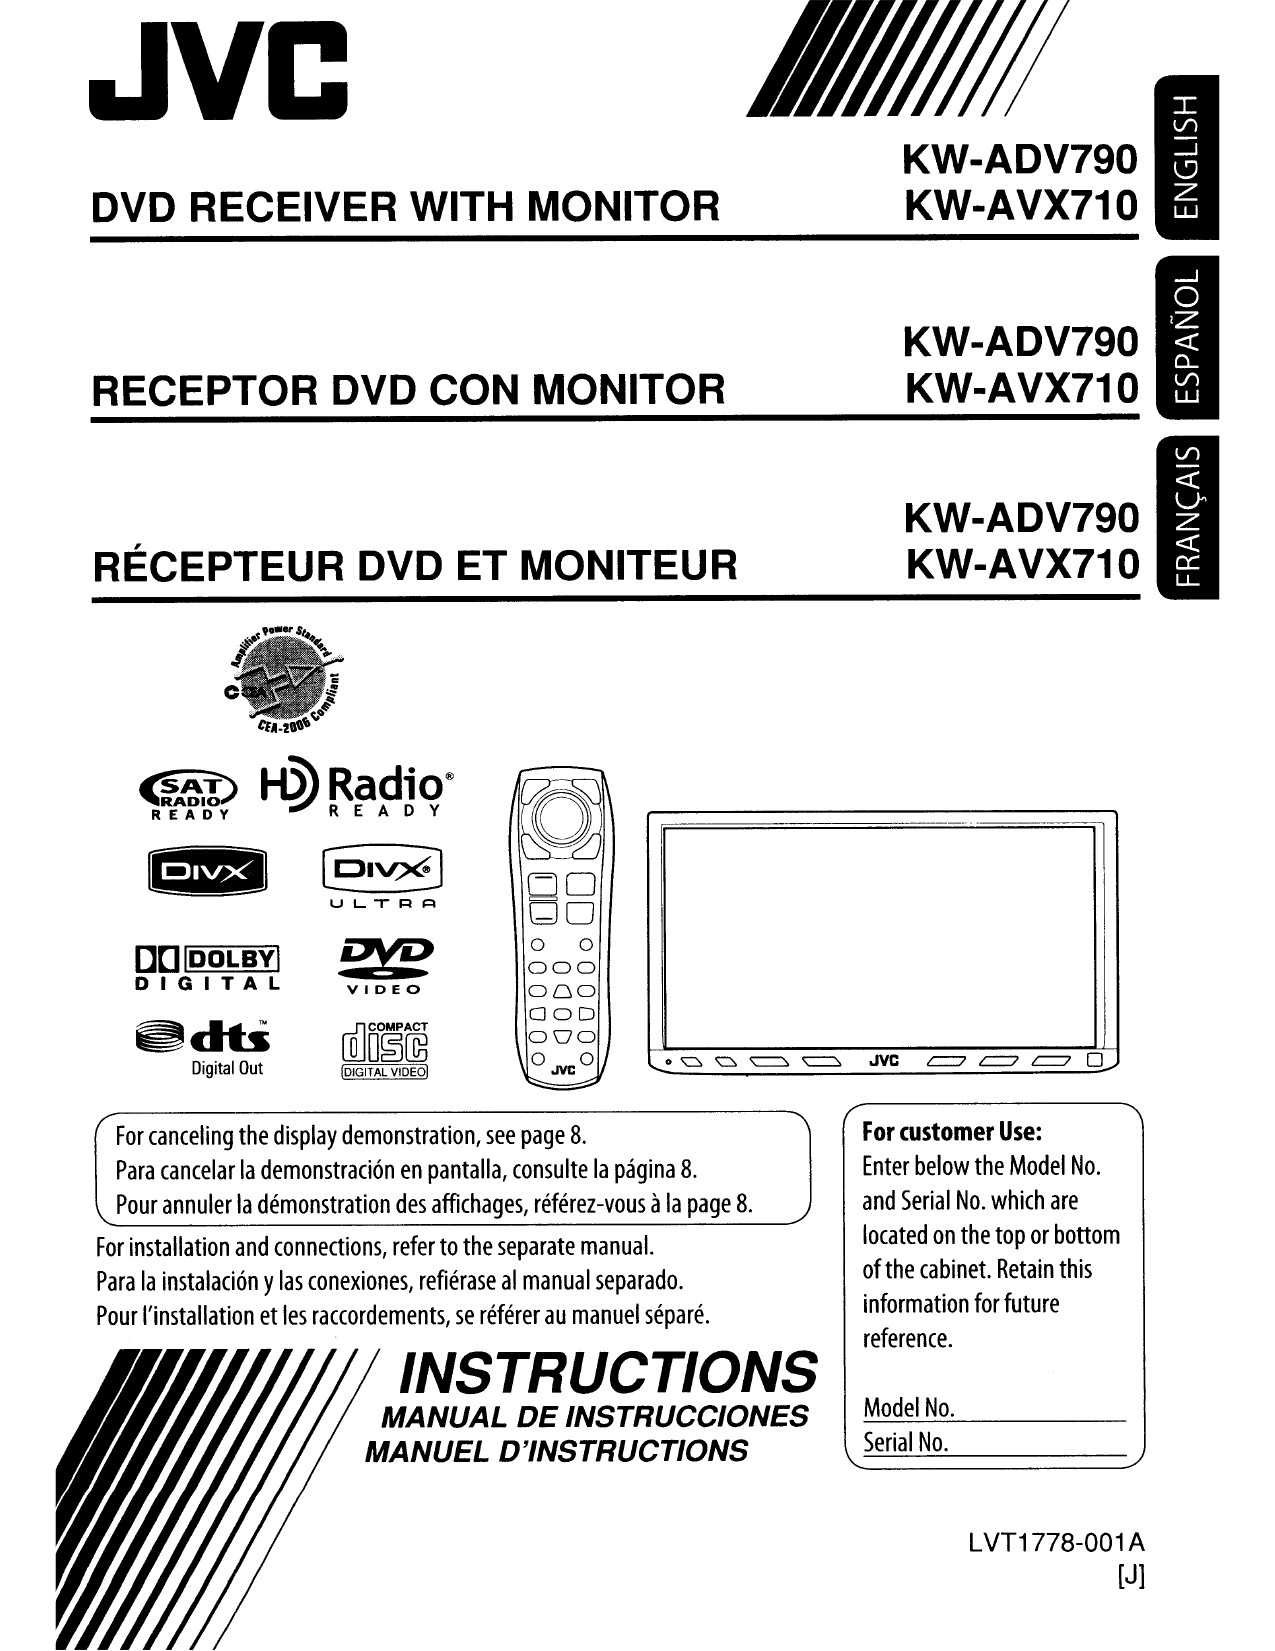 105avx710.pdf 0 download free pdf for jvc kw adv790 car video manual jvc kw-avx810 wiring diagram at fashall.co